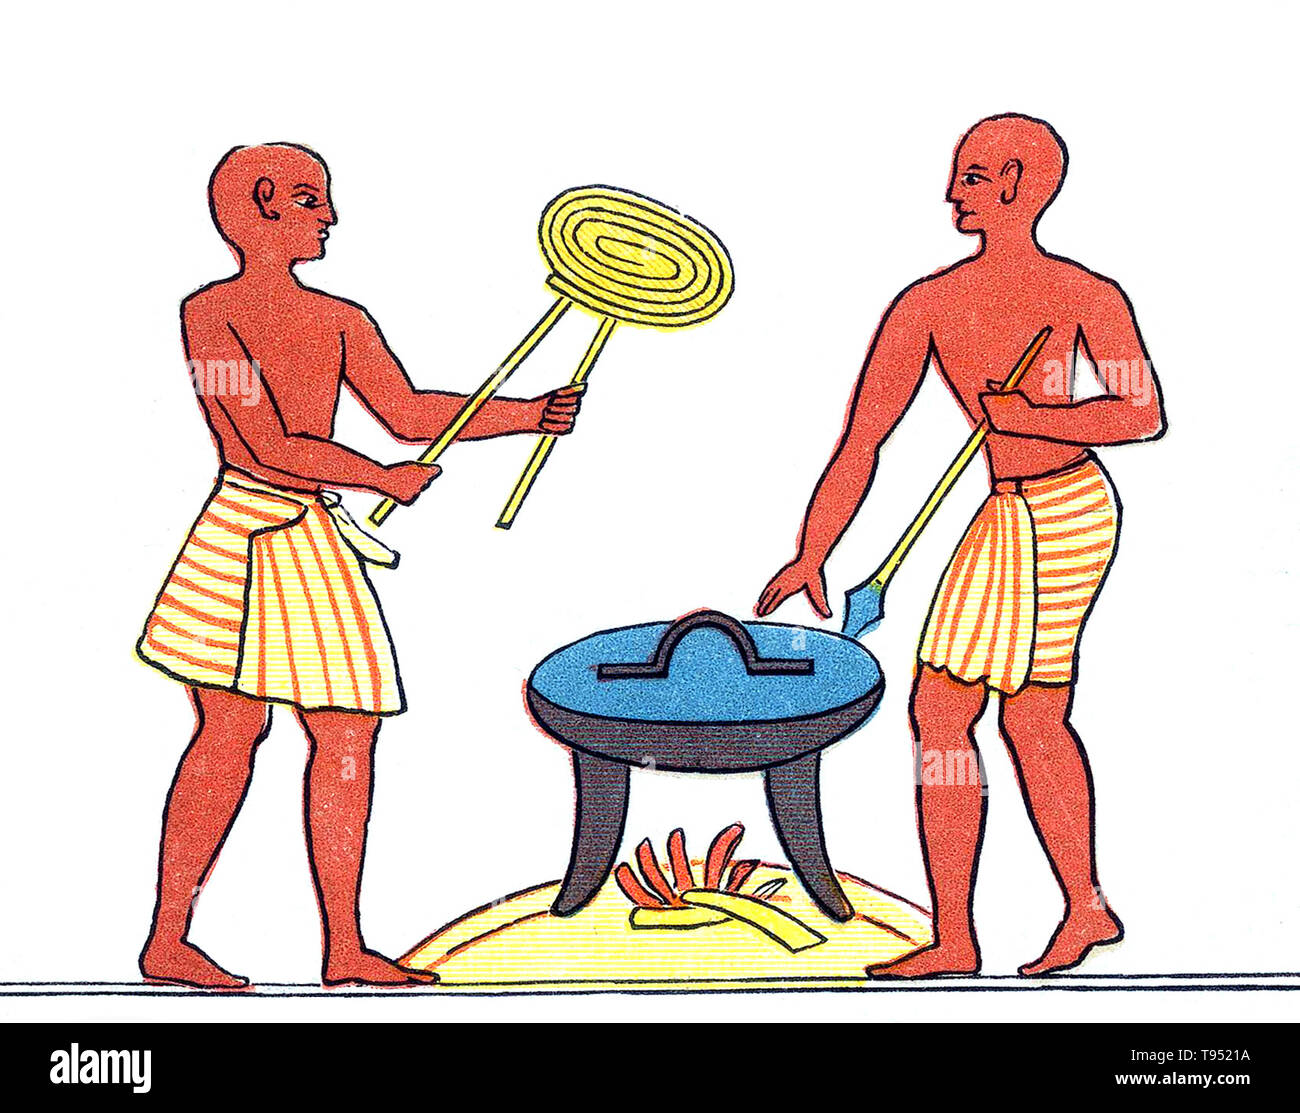 The cuisine of ancient Egypt covers a span of over three thousand years, but still retained many consistent traits until well into Greco-Roman times. The staples of both poor and wealthy Egyptians were bread and beer, often accompanied by green-shooted onions, other vegetables, and to a lesser extent meat, game and fish. Food could be prepared by stewing, baking, boiling, grilling, frying, or roasting. Spices and herbs were added for flavor, though the former were expensive imports and therefore confined to the tables of the wealthy. Food such as meats was mostly preserved by salting, and date - Stock Image